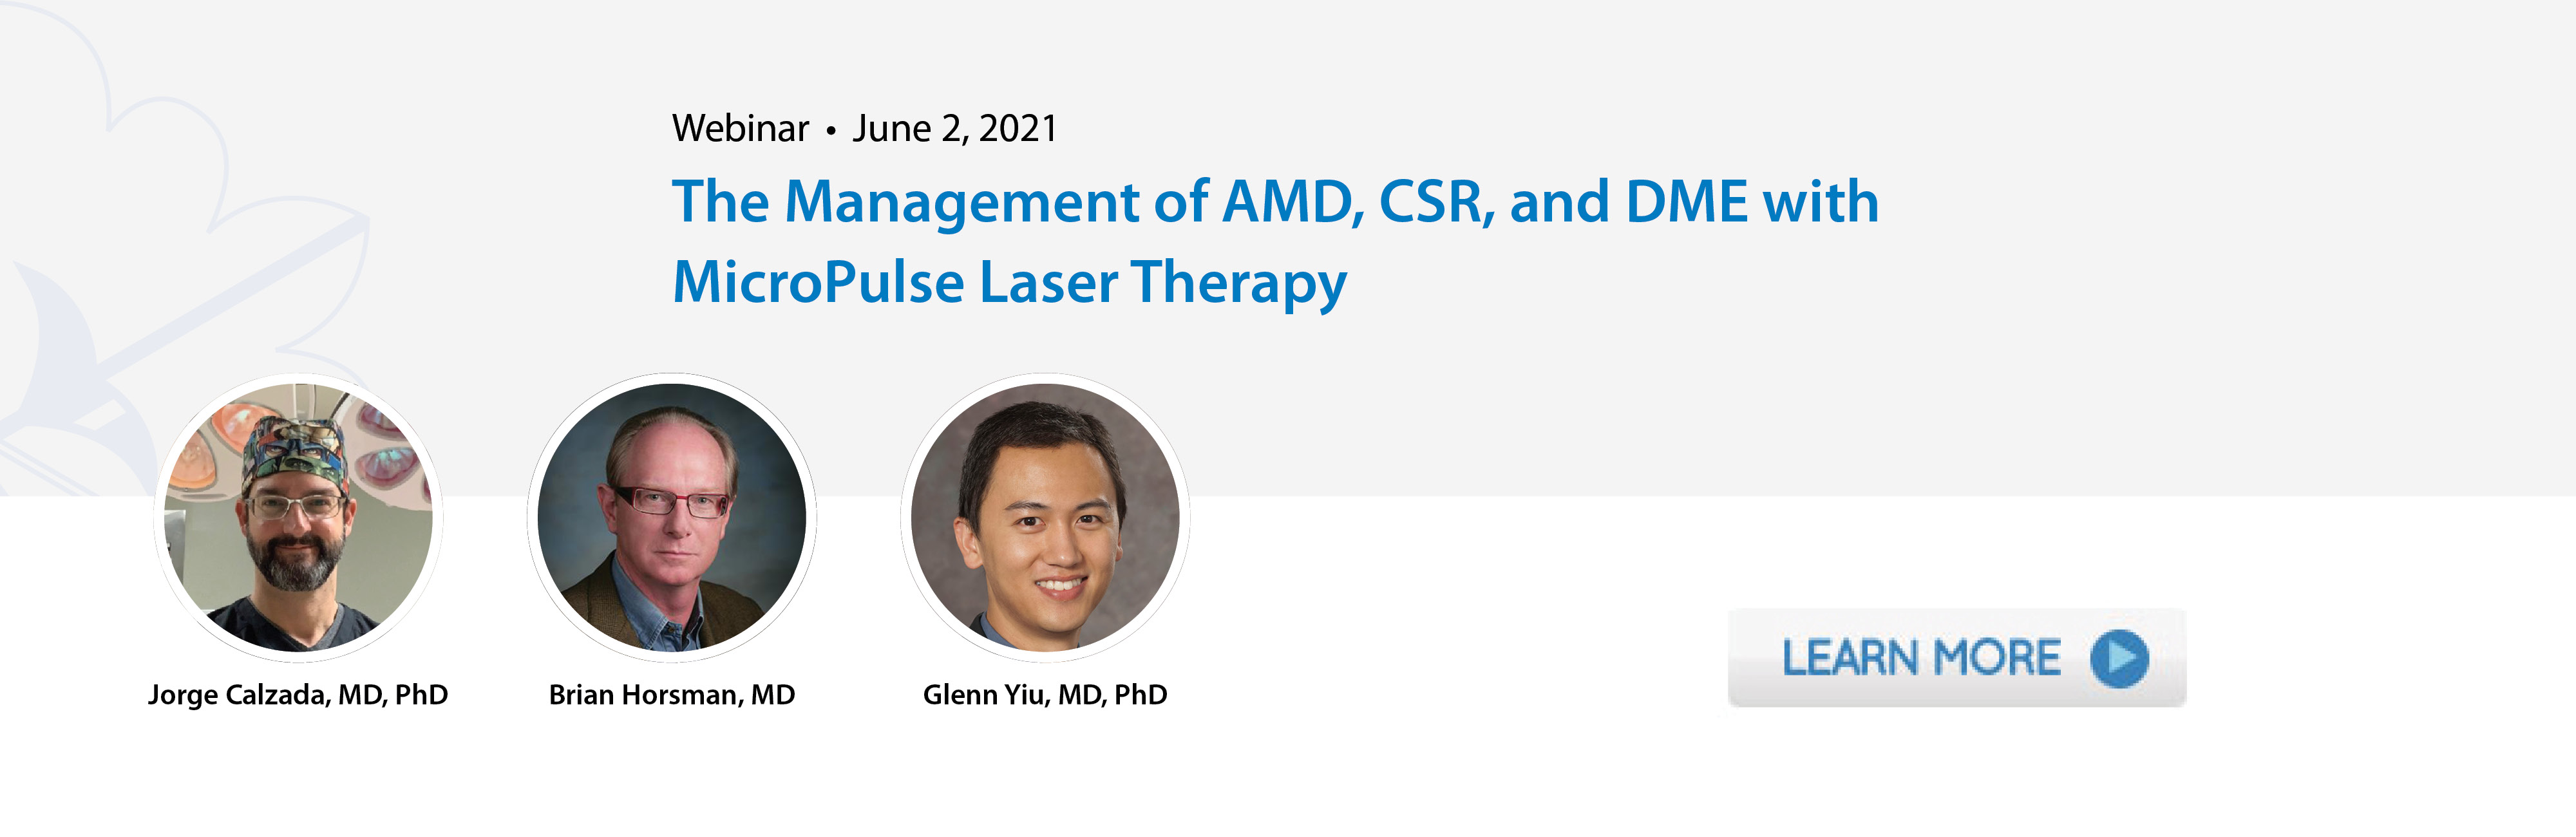 The Management of AMD, CSR, and DME with MicroPulse Laser Therapy